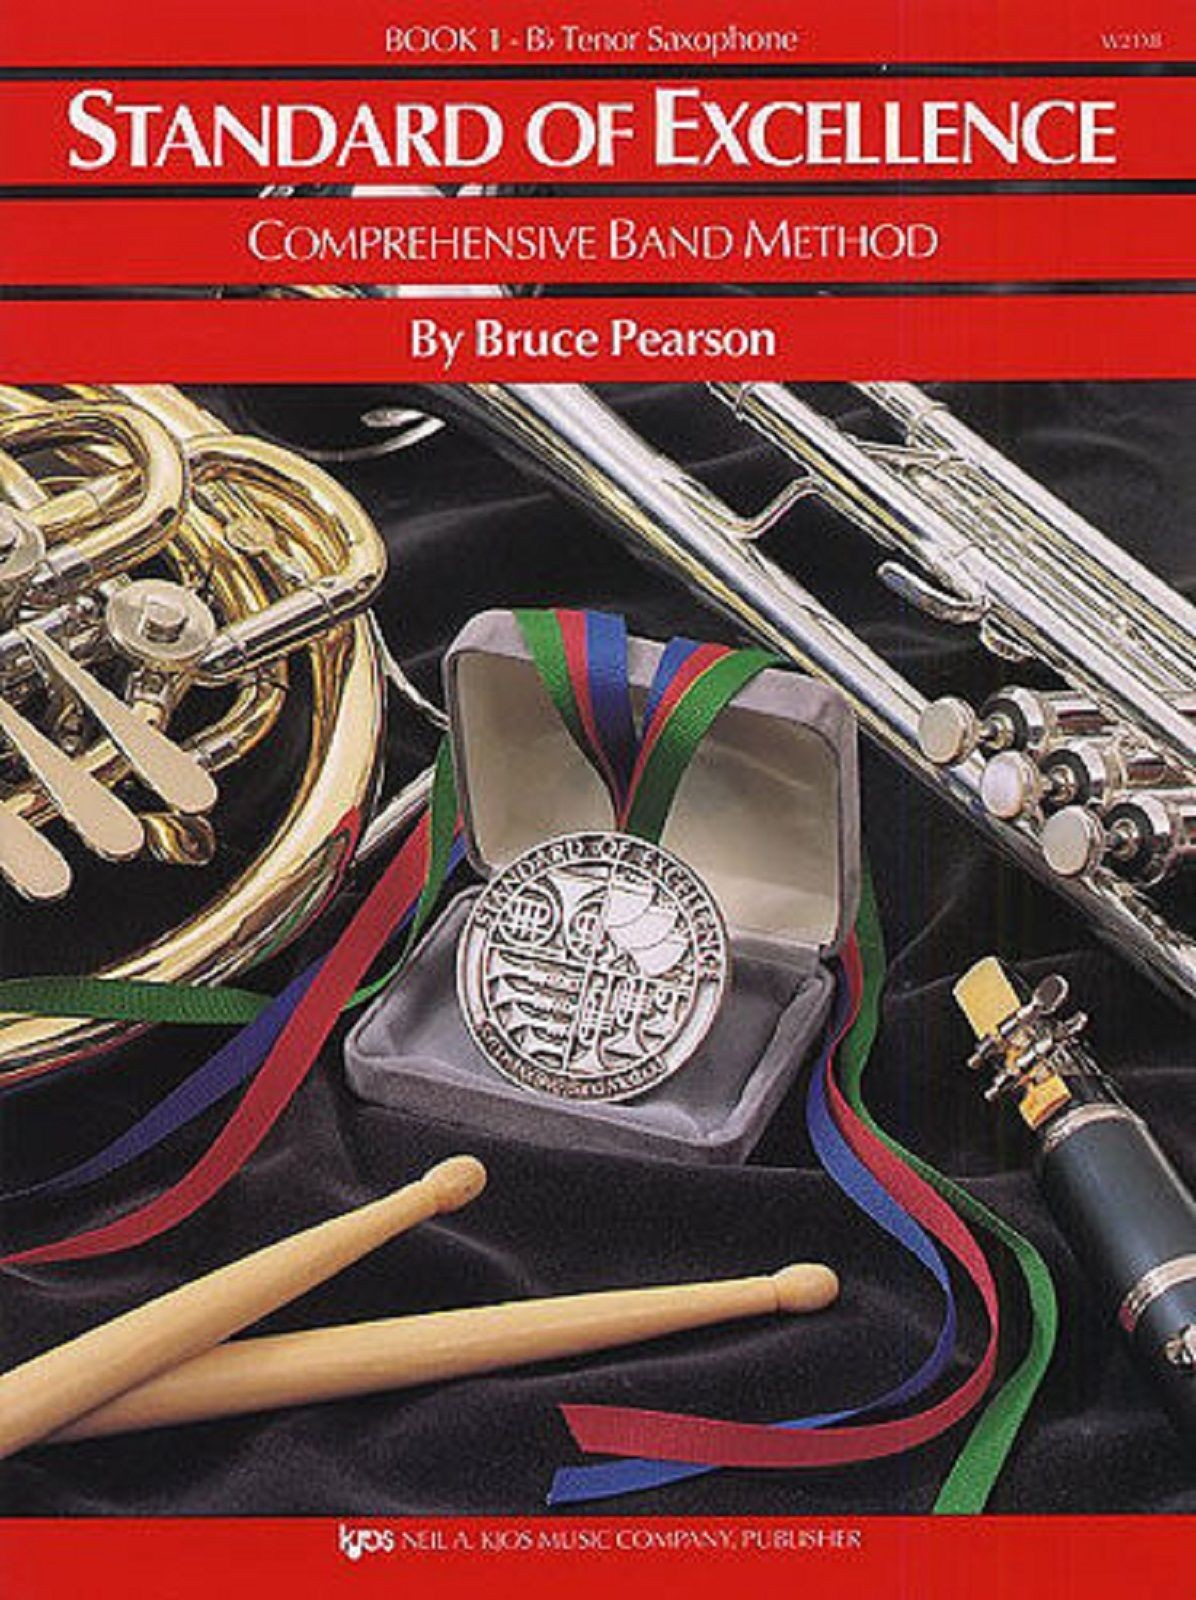 Standard Excellence Comprehensive Band Method Book 1 Tenor Sax Sheet Music S160